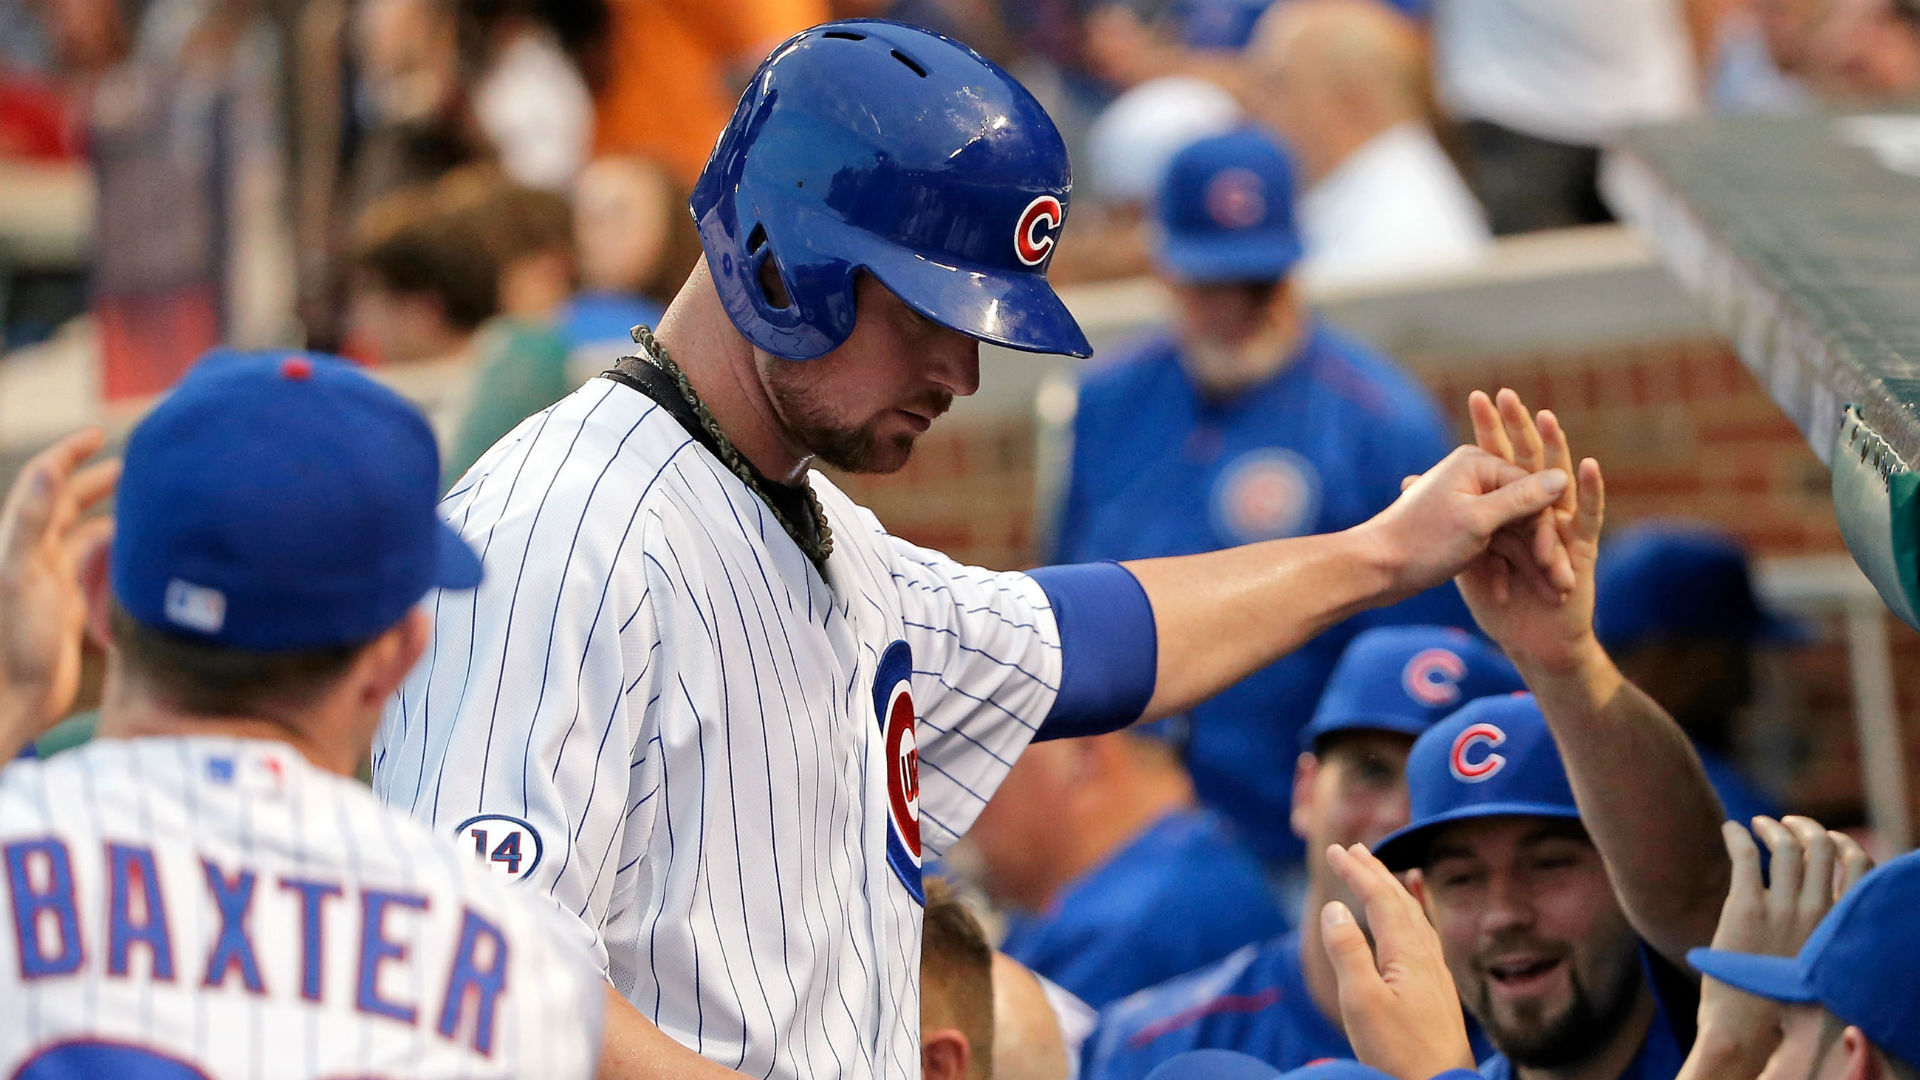 Jon Lester gets first career hit in 67th at-bat, takes run at no-hitter